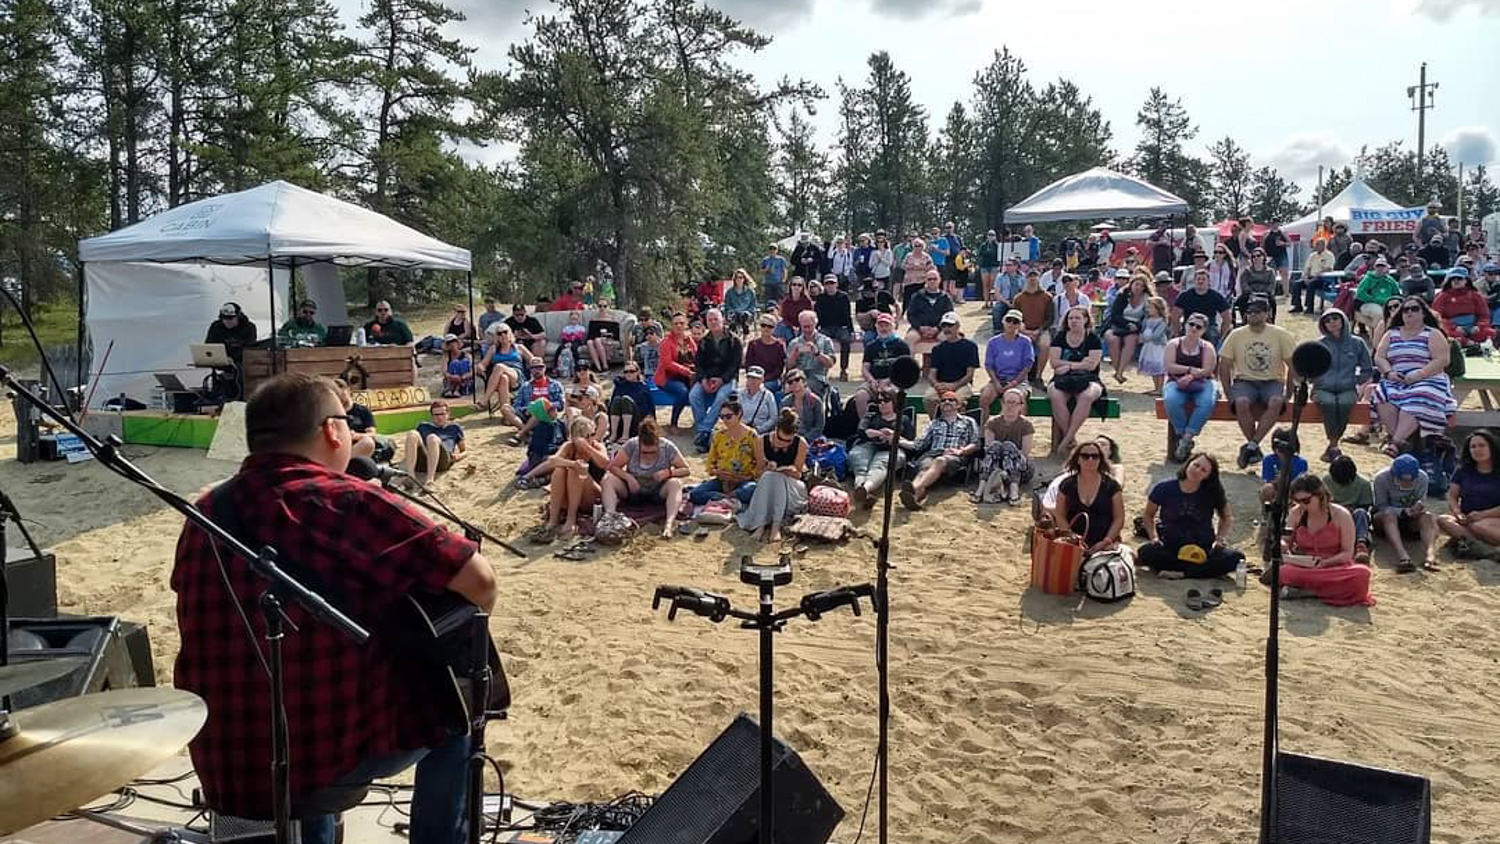 William Prince plays the Cabin Stage at Folk on the Rocks 2018